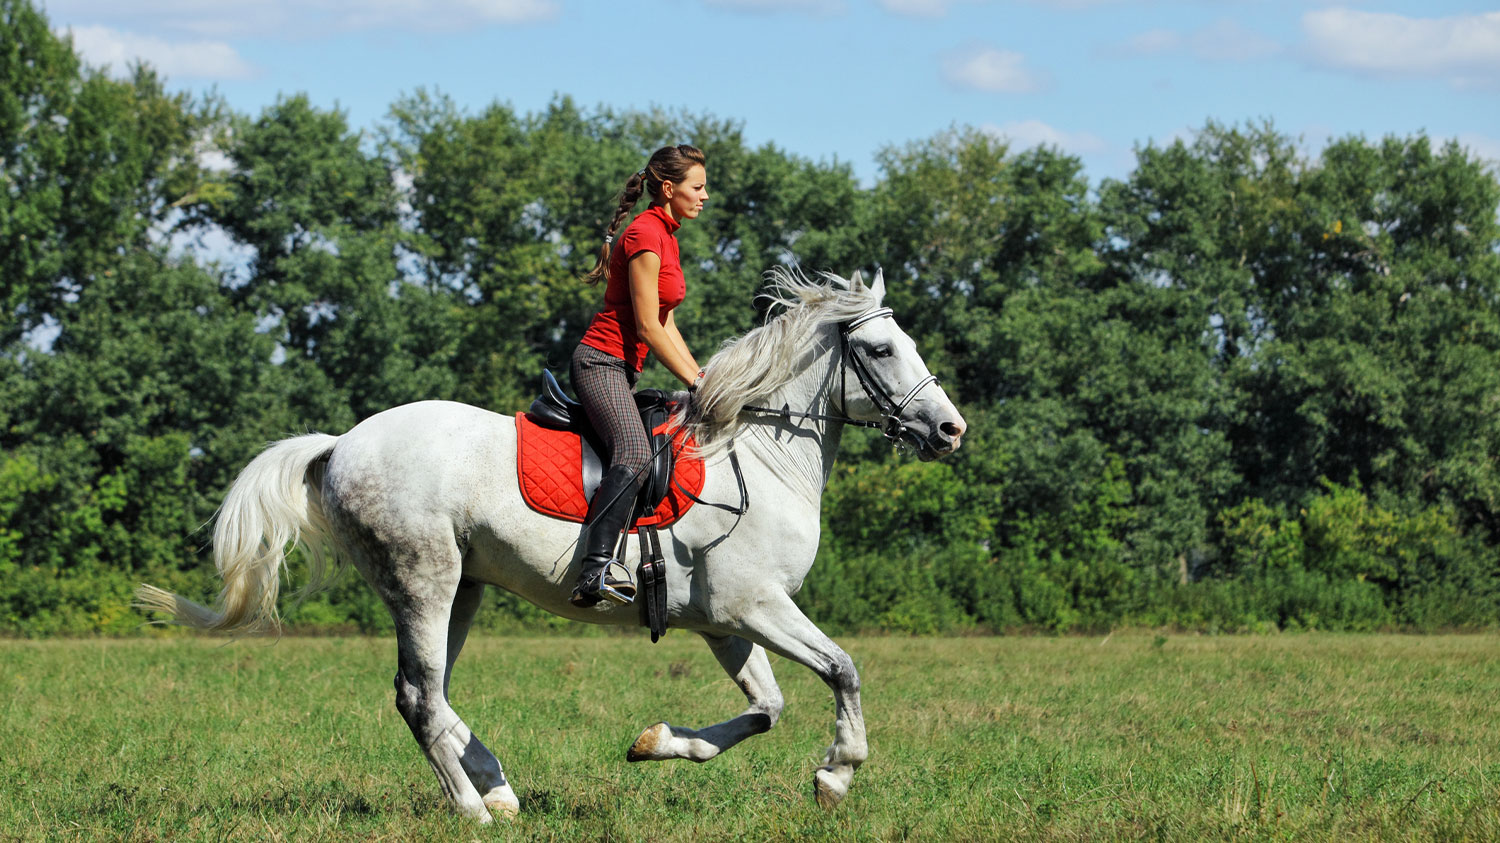 Equestrian Training in Field